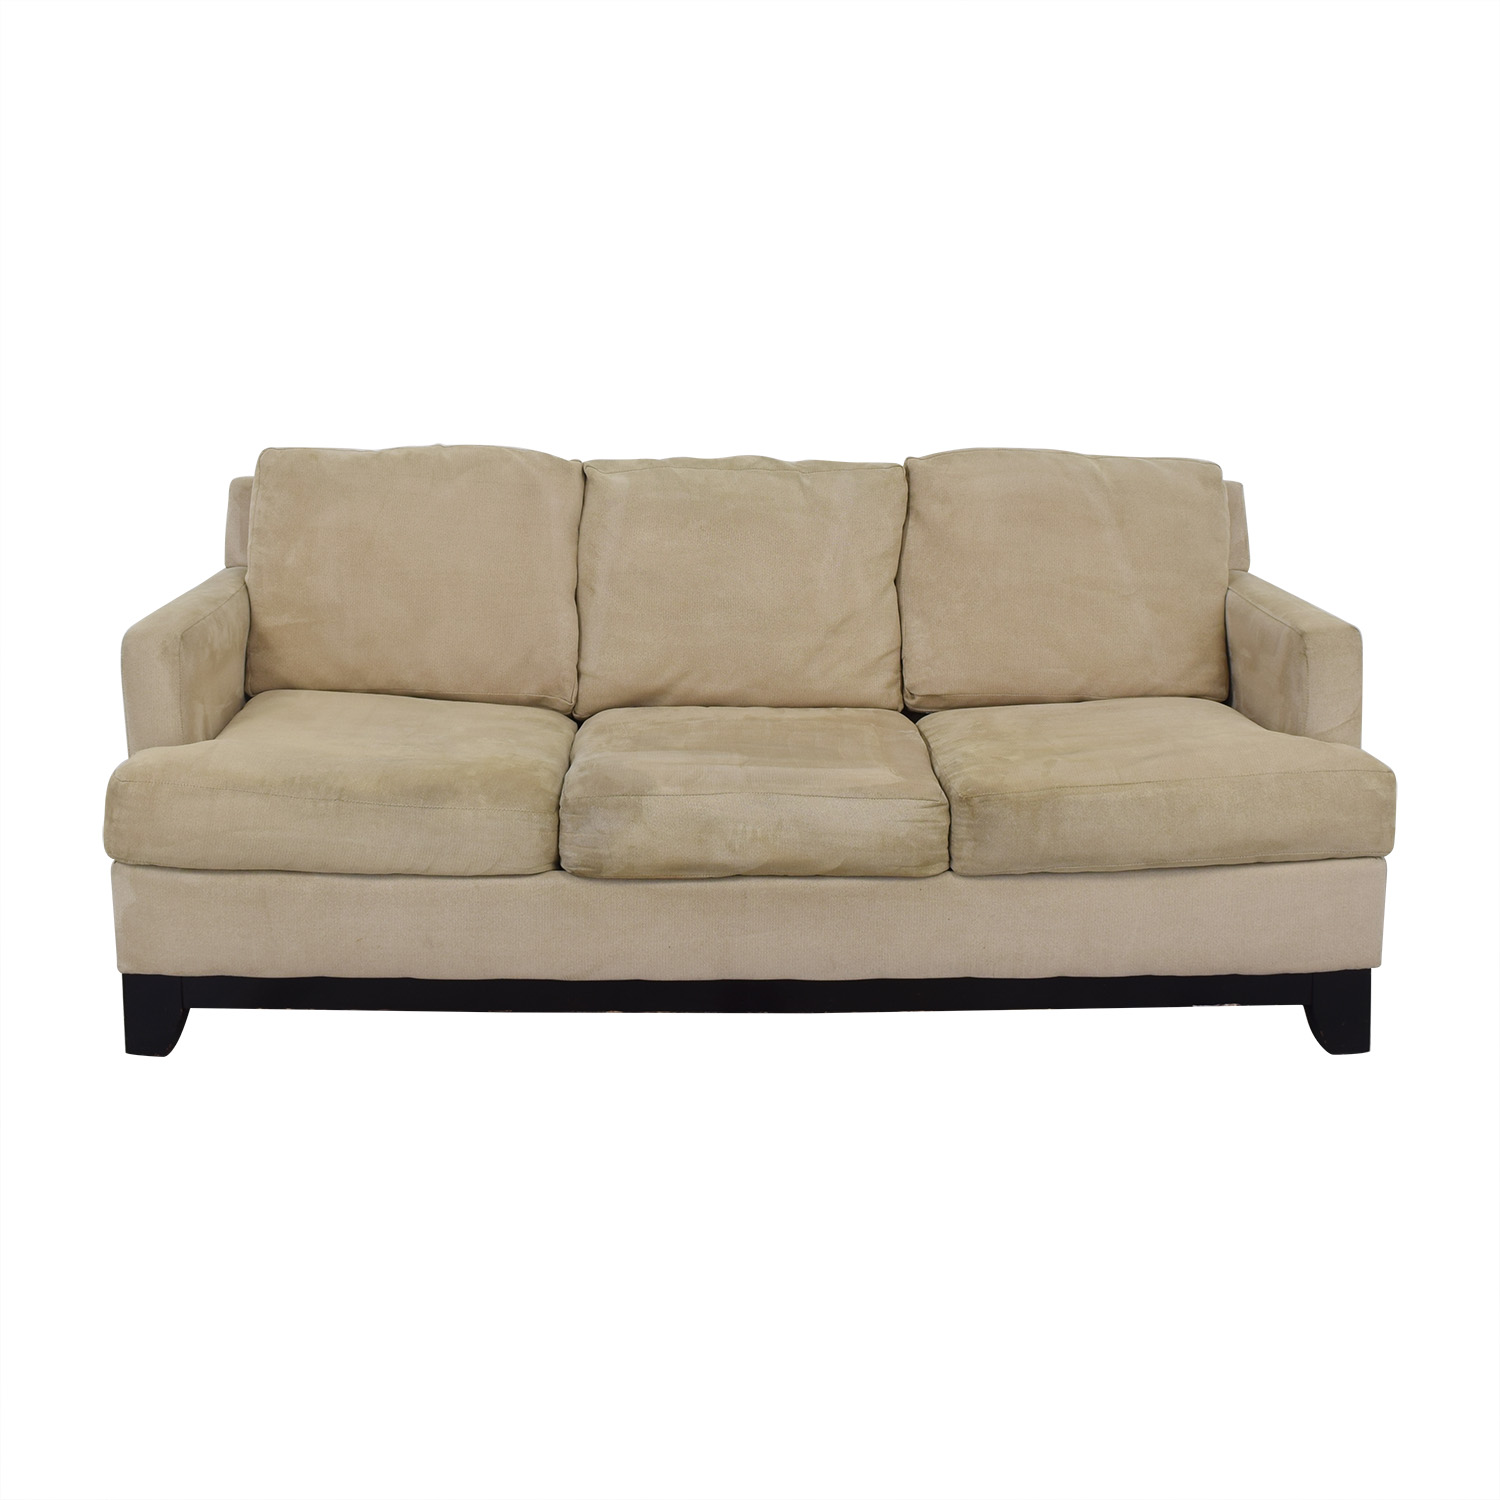 Bauhaus Furniture Bauhaus Three Seat Sofa price